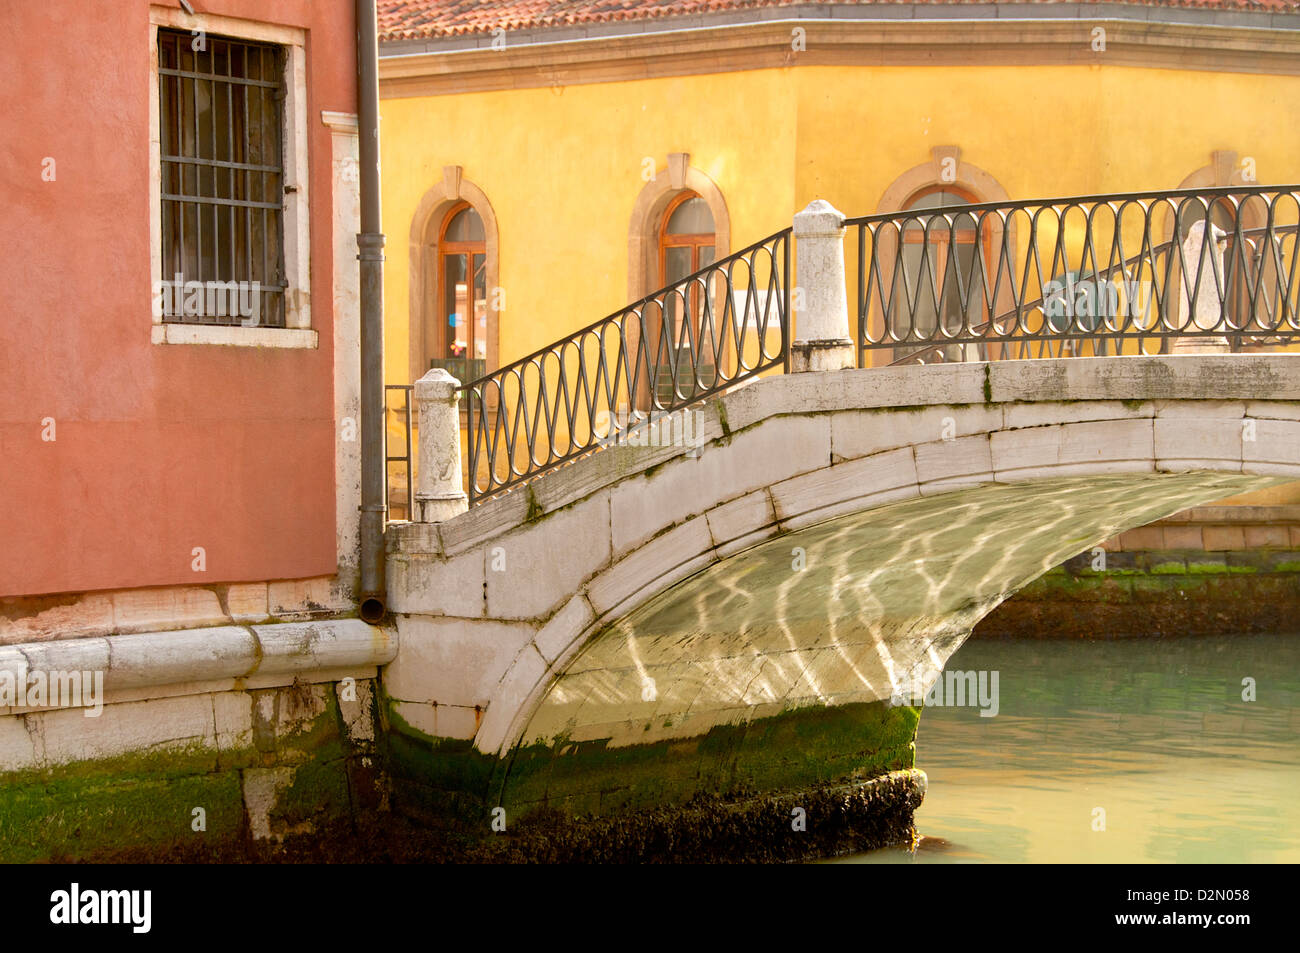 Bridge over canal with water reflections, Venice, UNESCO World Heritage Site, Veneto, Italy, Europe - Stock Image